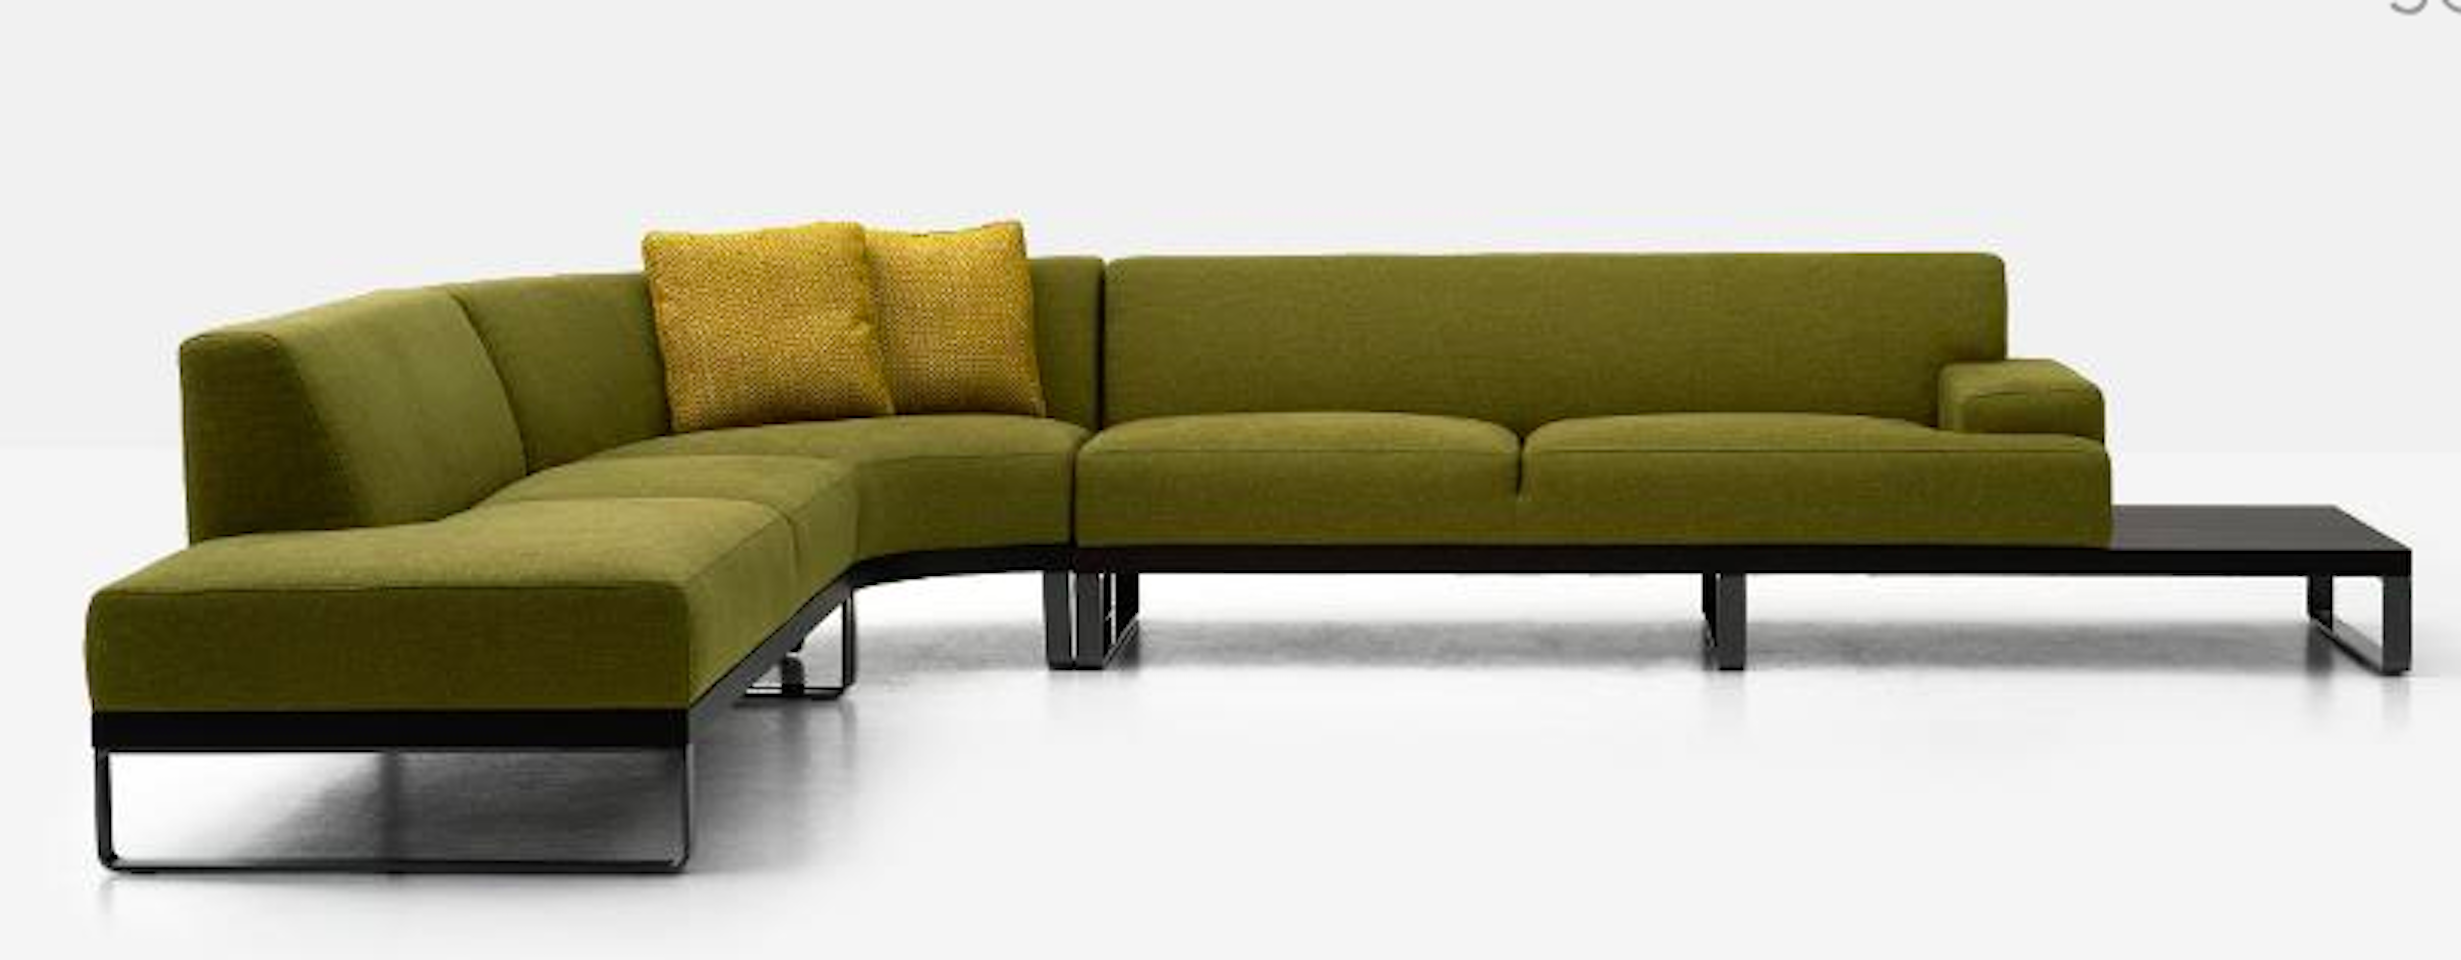 Sodeo By Dellarobbia With Images Modular Sectional Sofa Conference Room Design Luxury Furniture Showroom